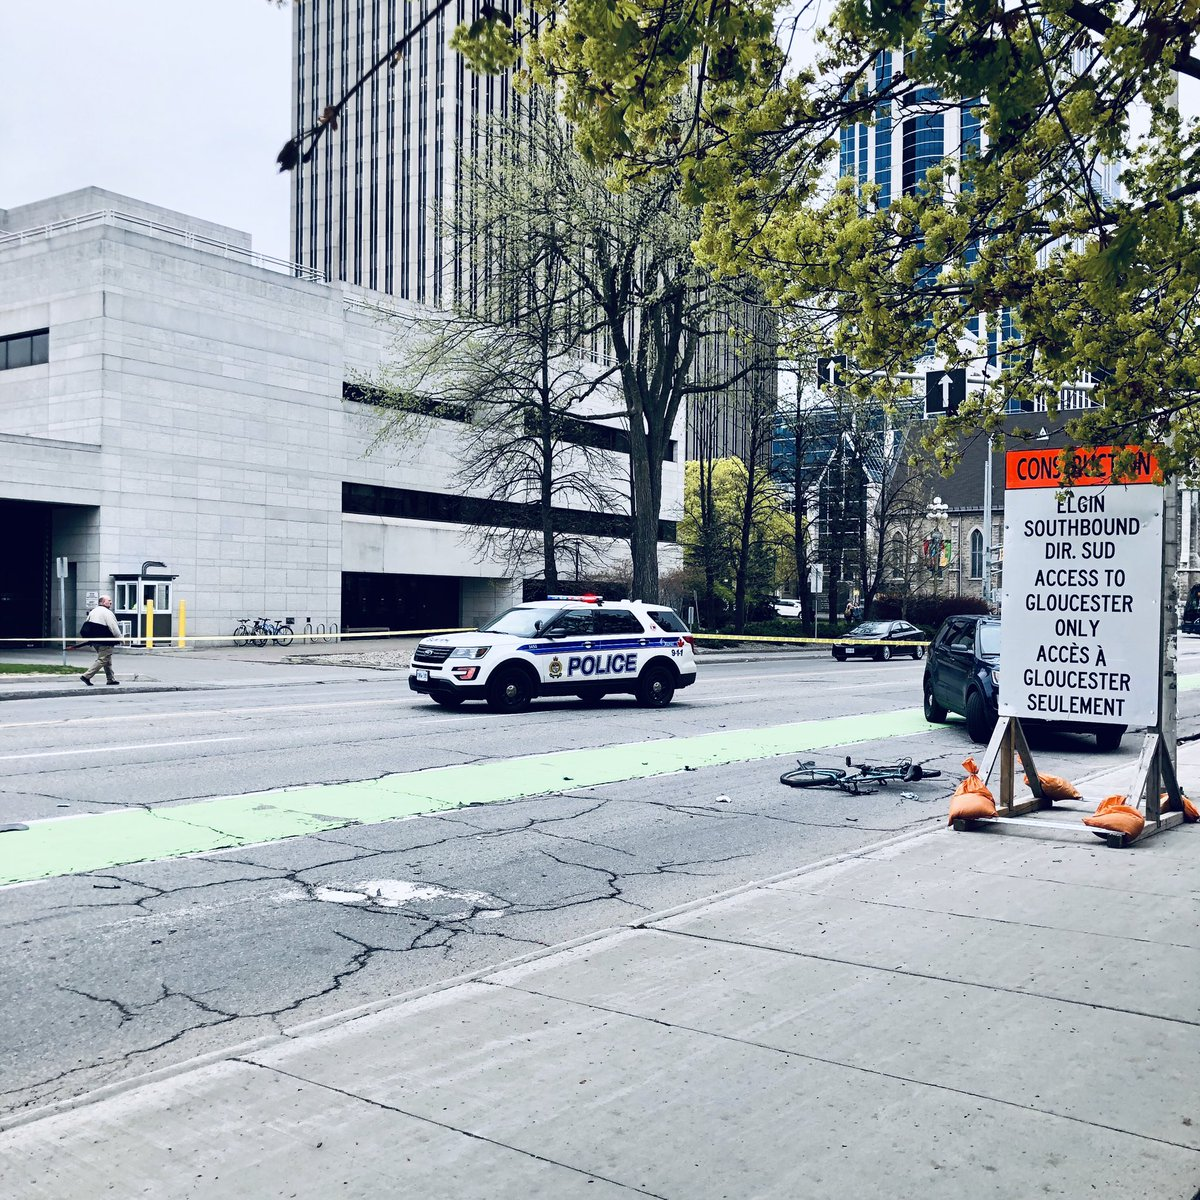 Ottawa police are investigating an alleged hit-and-run that sent a cyclist to hospital with serious injuries on Thursday morning.